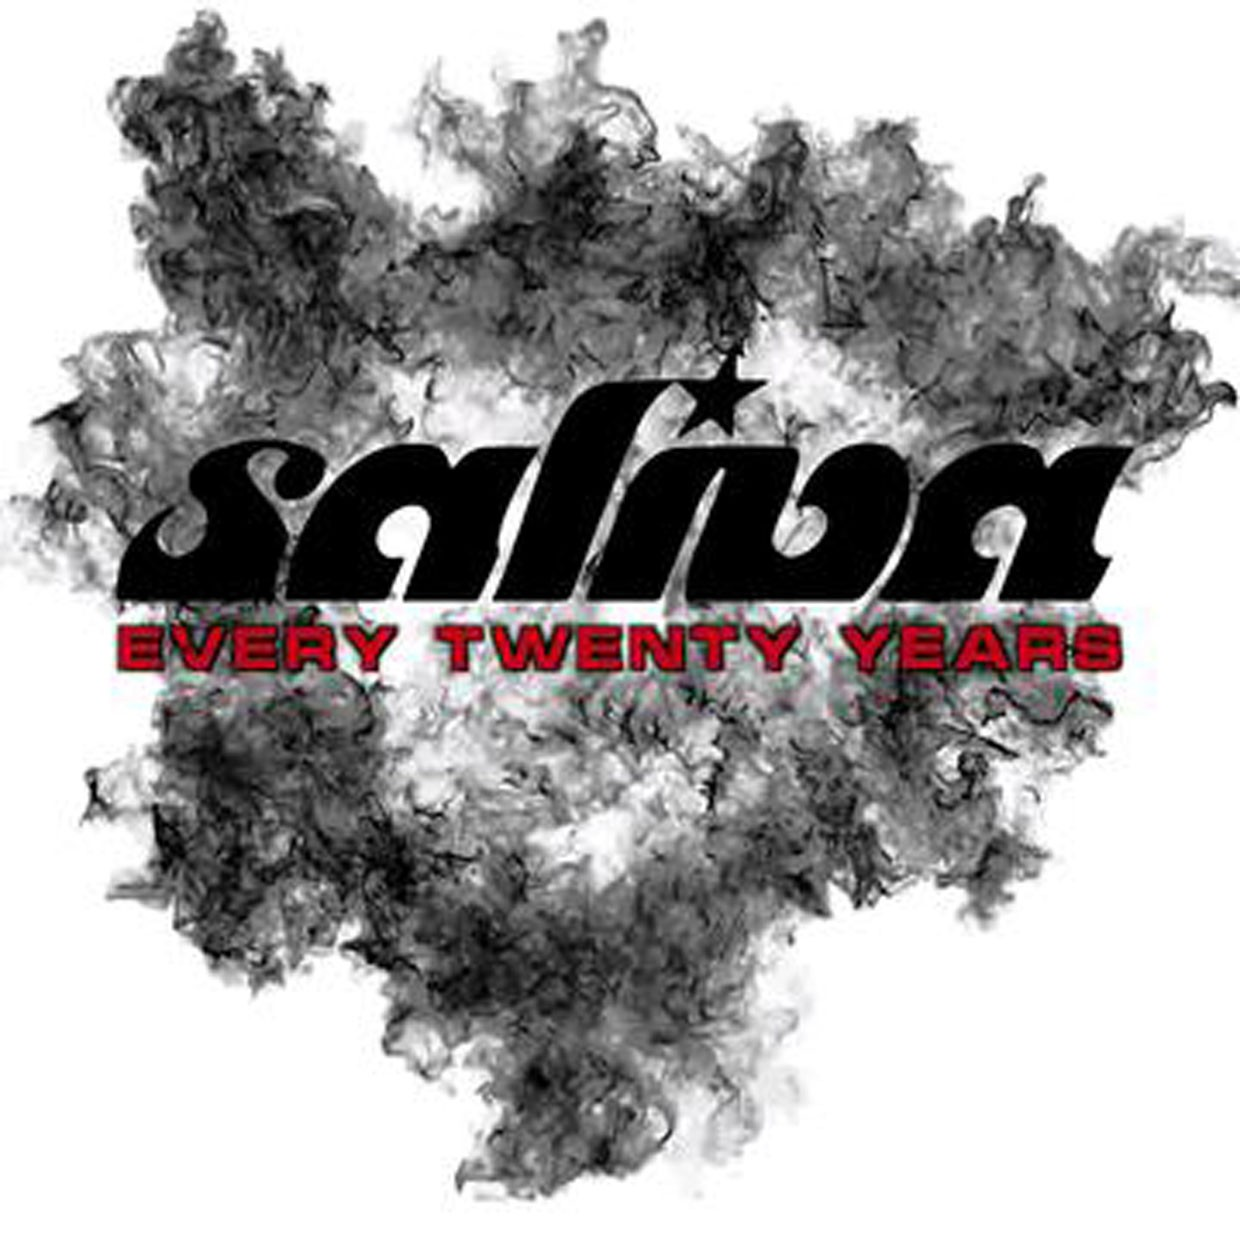 Saliva to Celebrate 'Every Six Seconds' Album With 'Every Twenty Years' EP: Exclusive